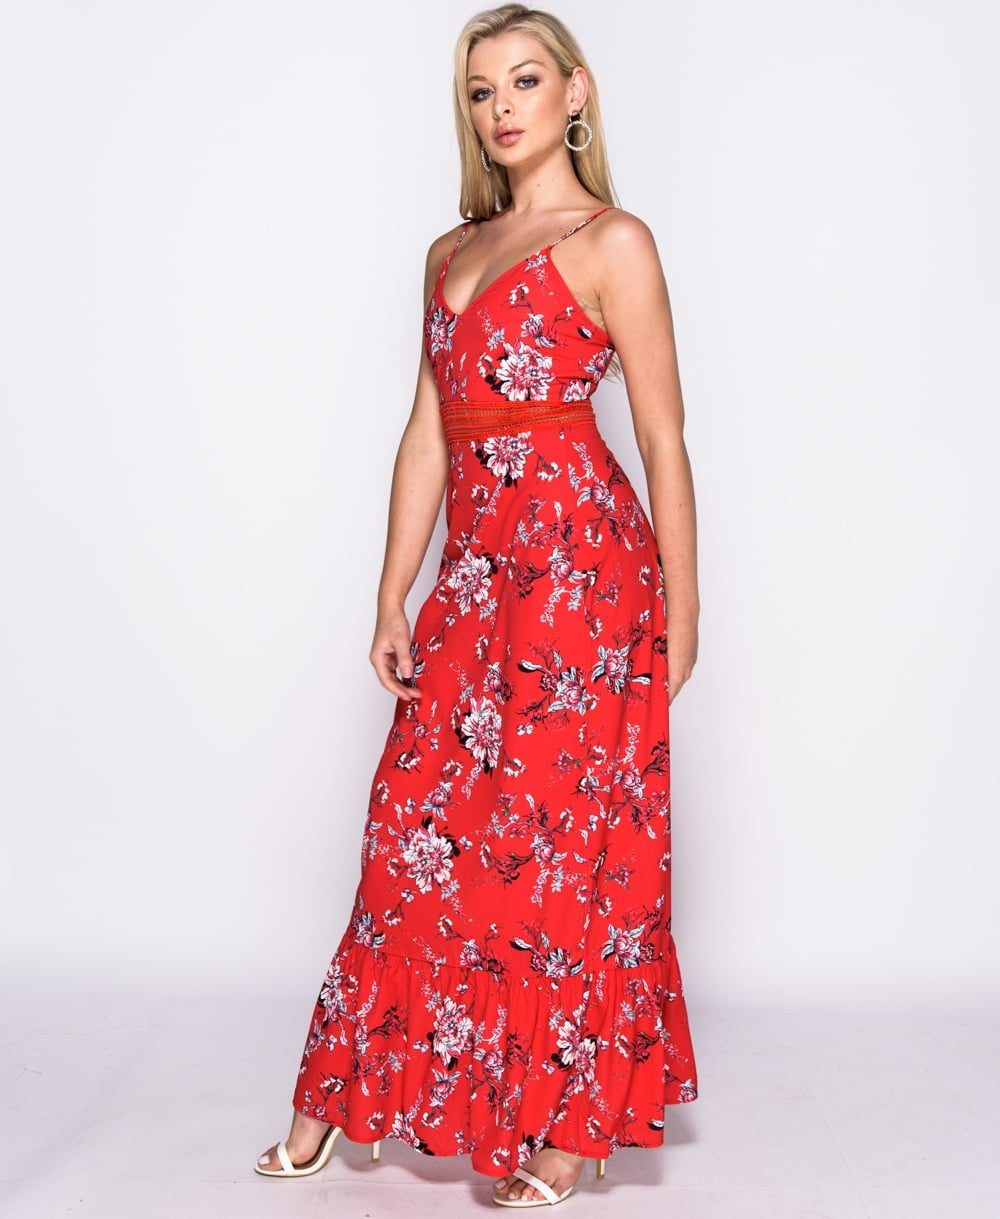 Red Floral print lace trim maxi dress long dress Online shopping mauritius